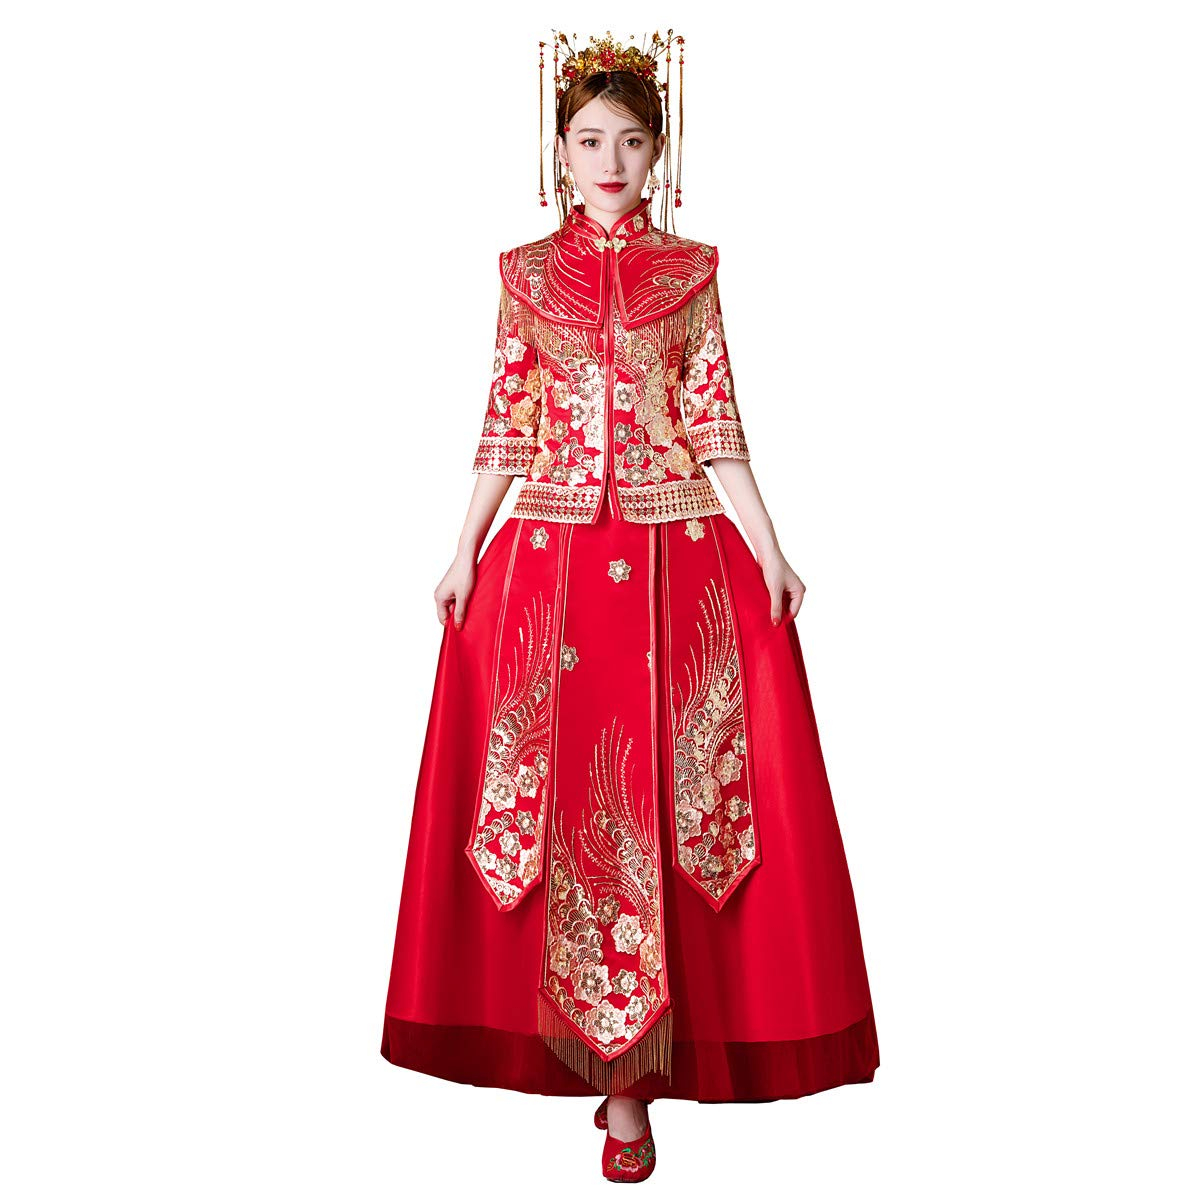 Shanghai Story Half Sleeve Chinese Wedding Dress Bridal Dress Qipao Xiuhe Suit xh629 Size 3XL